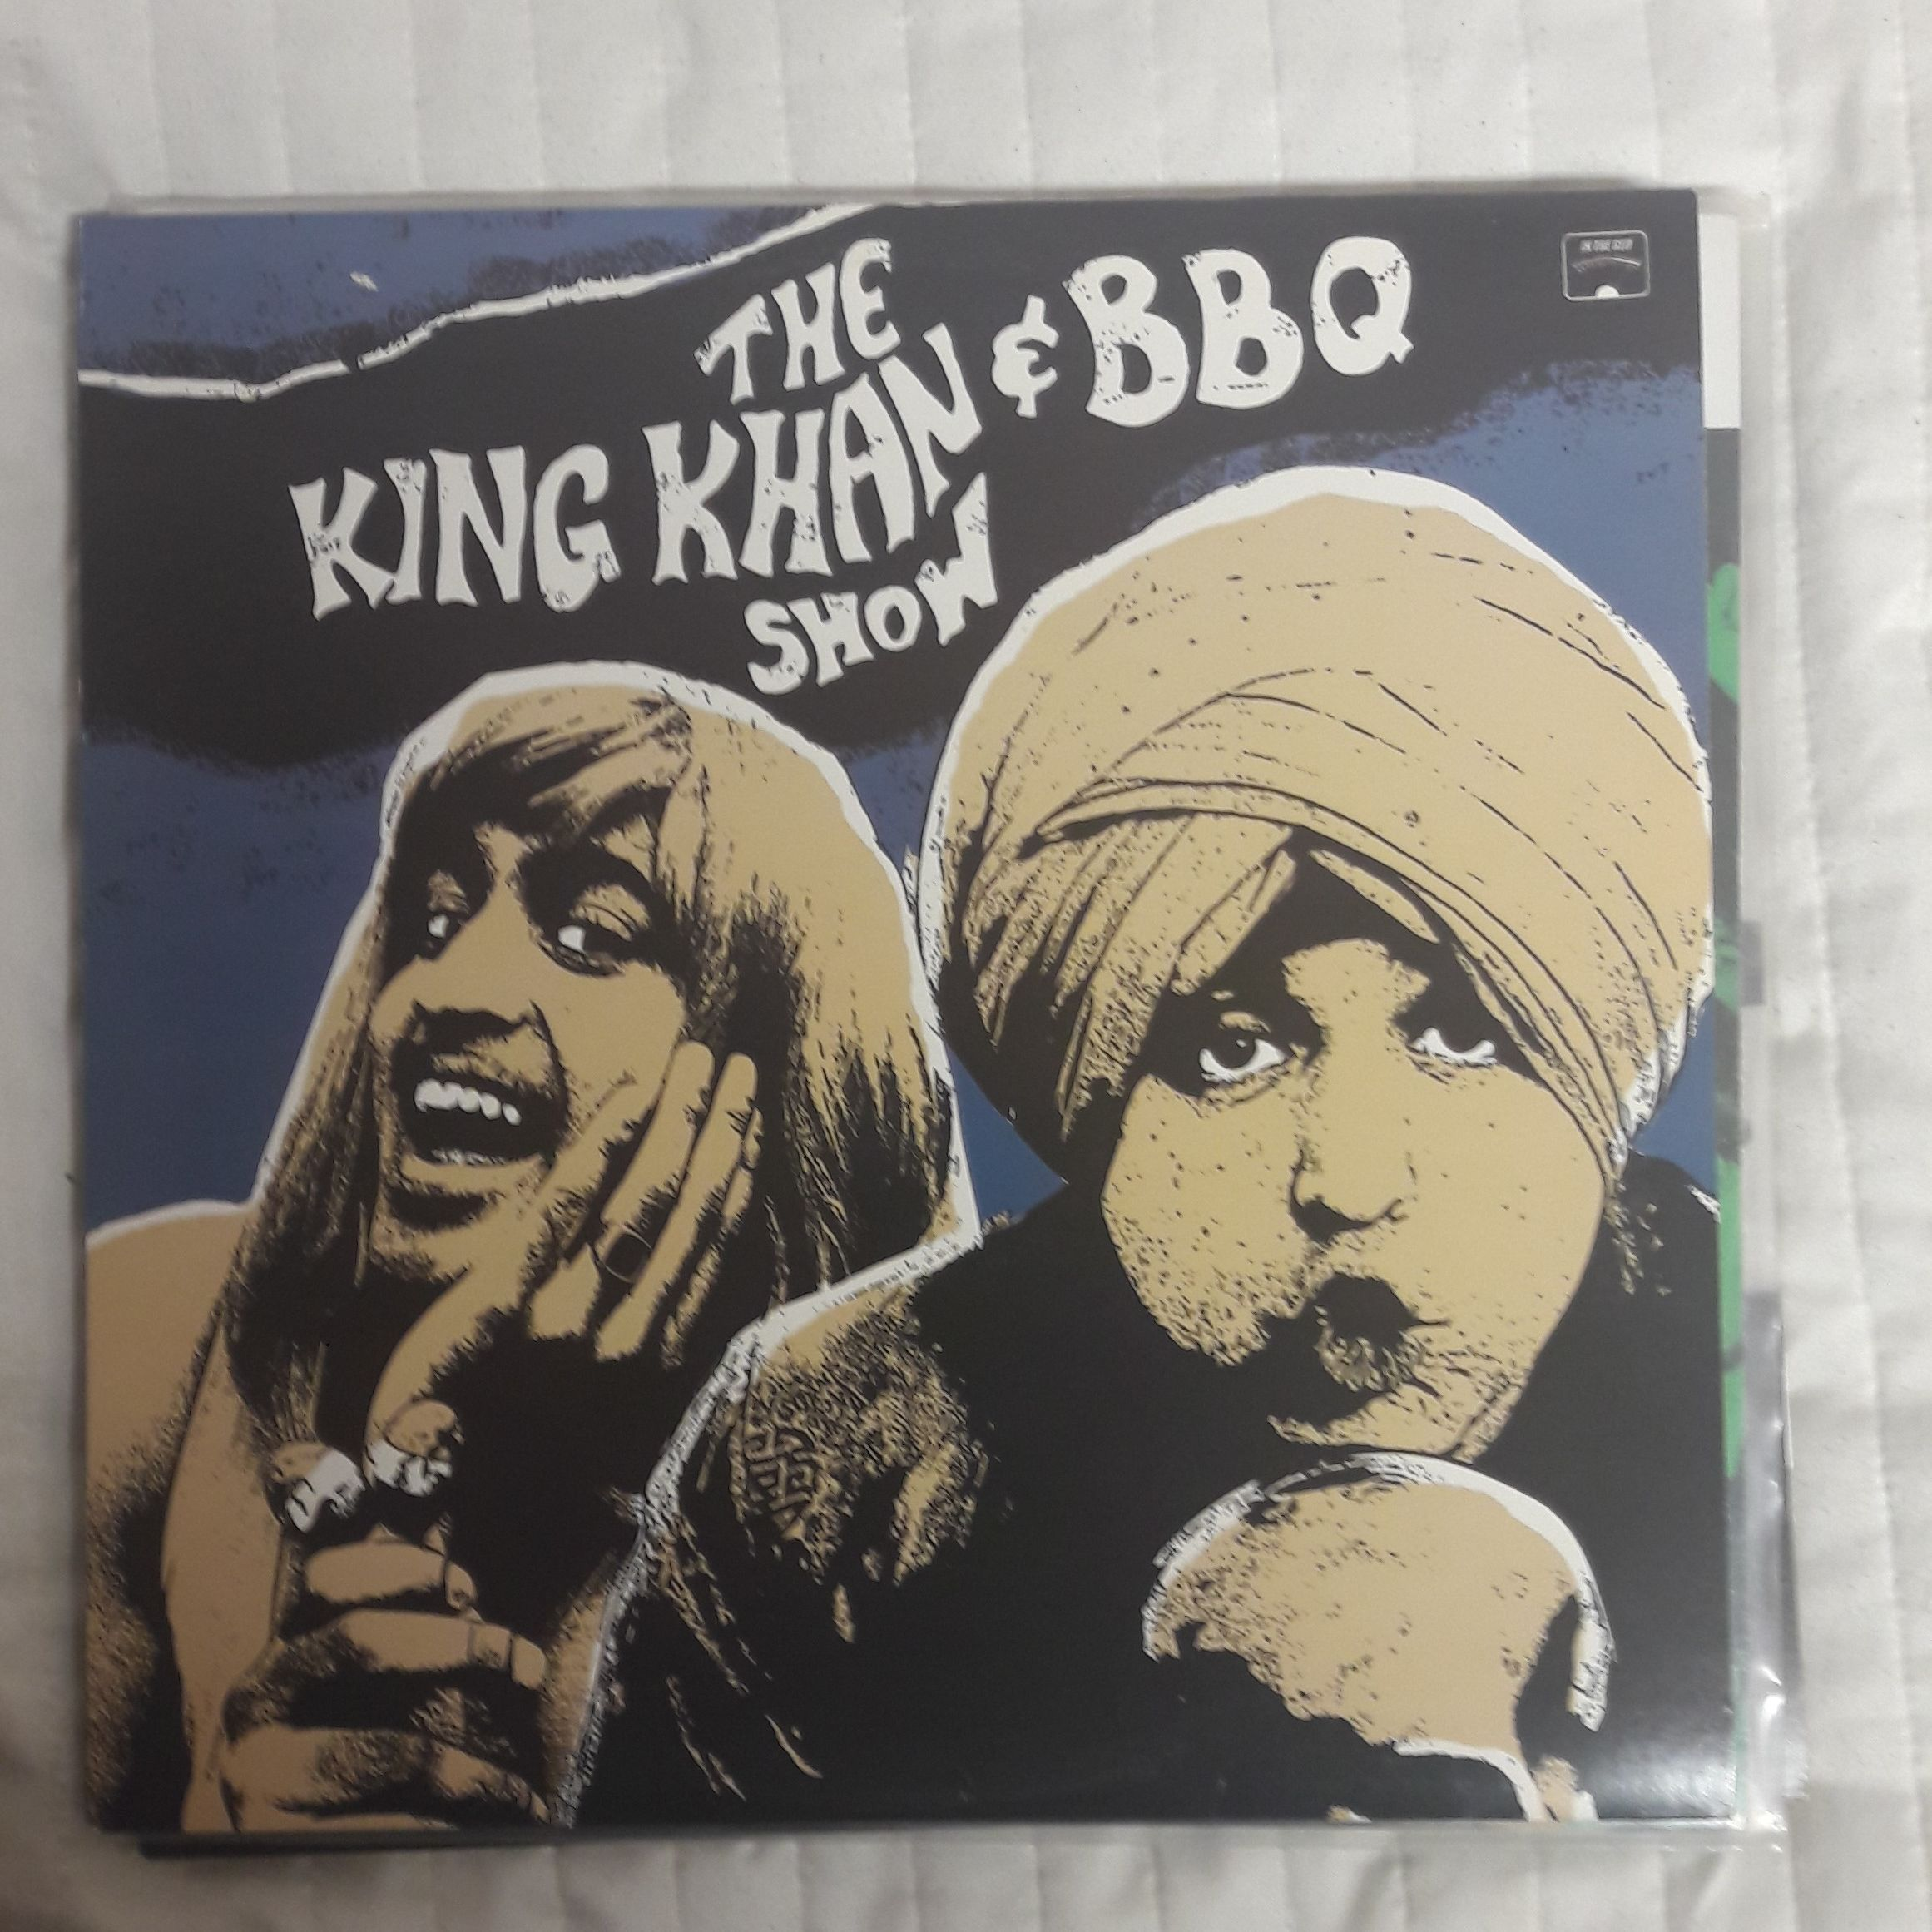 The king khan & bbq show Wwhat for dinner LP undefined